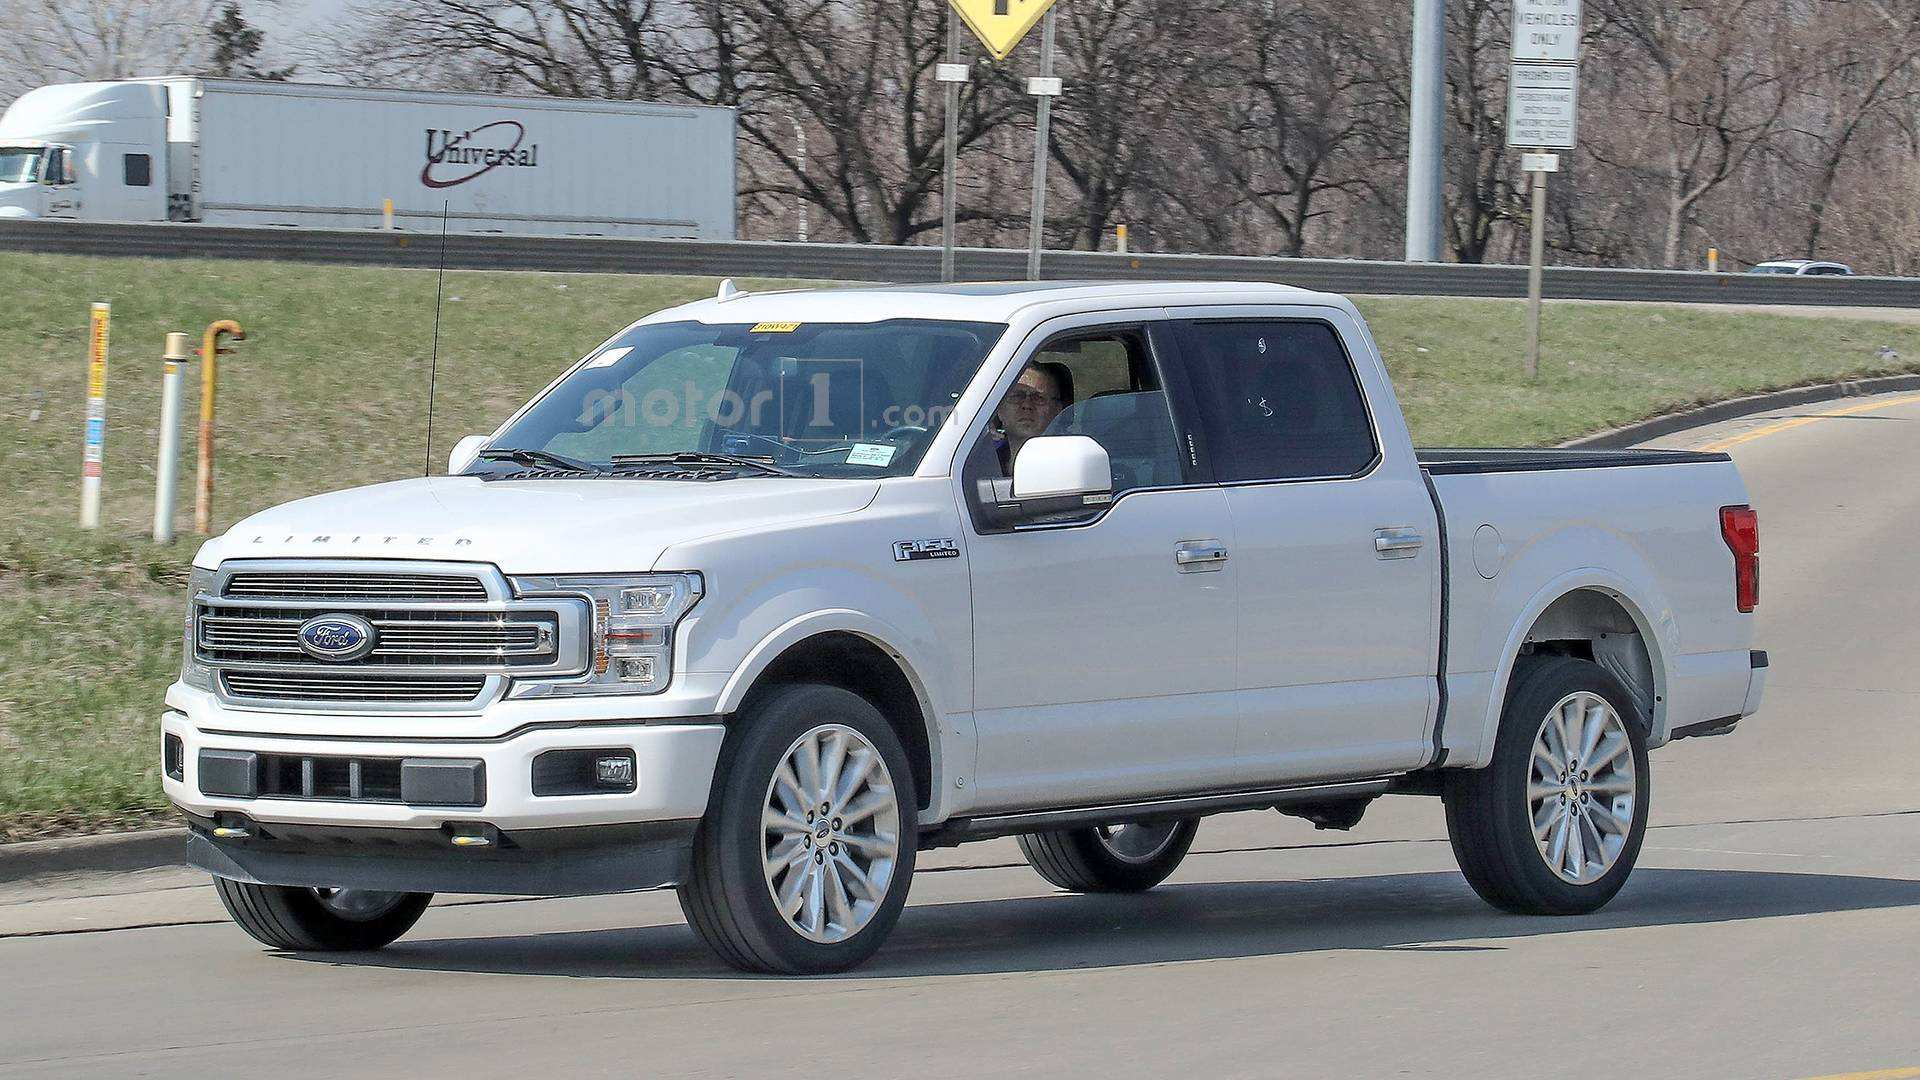 56 New 2019 Ford F150 Price and Review by 2019 Ford F150